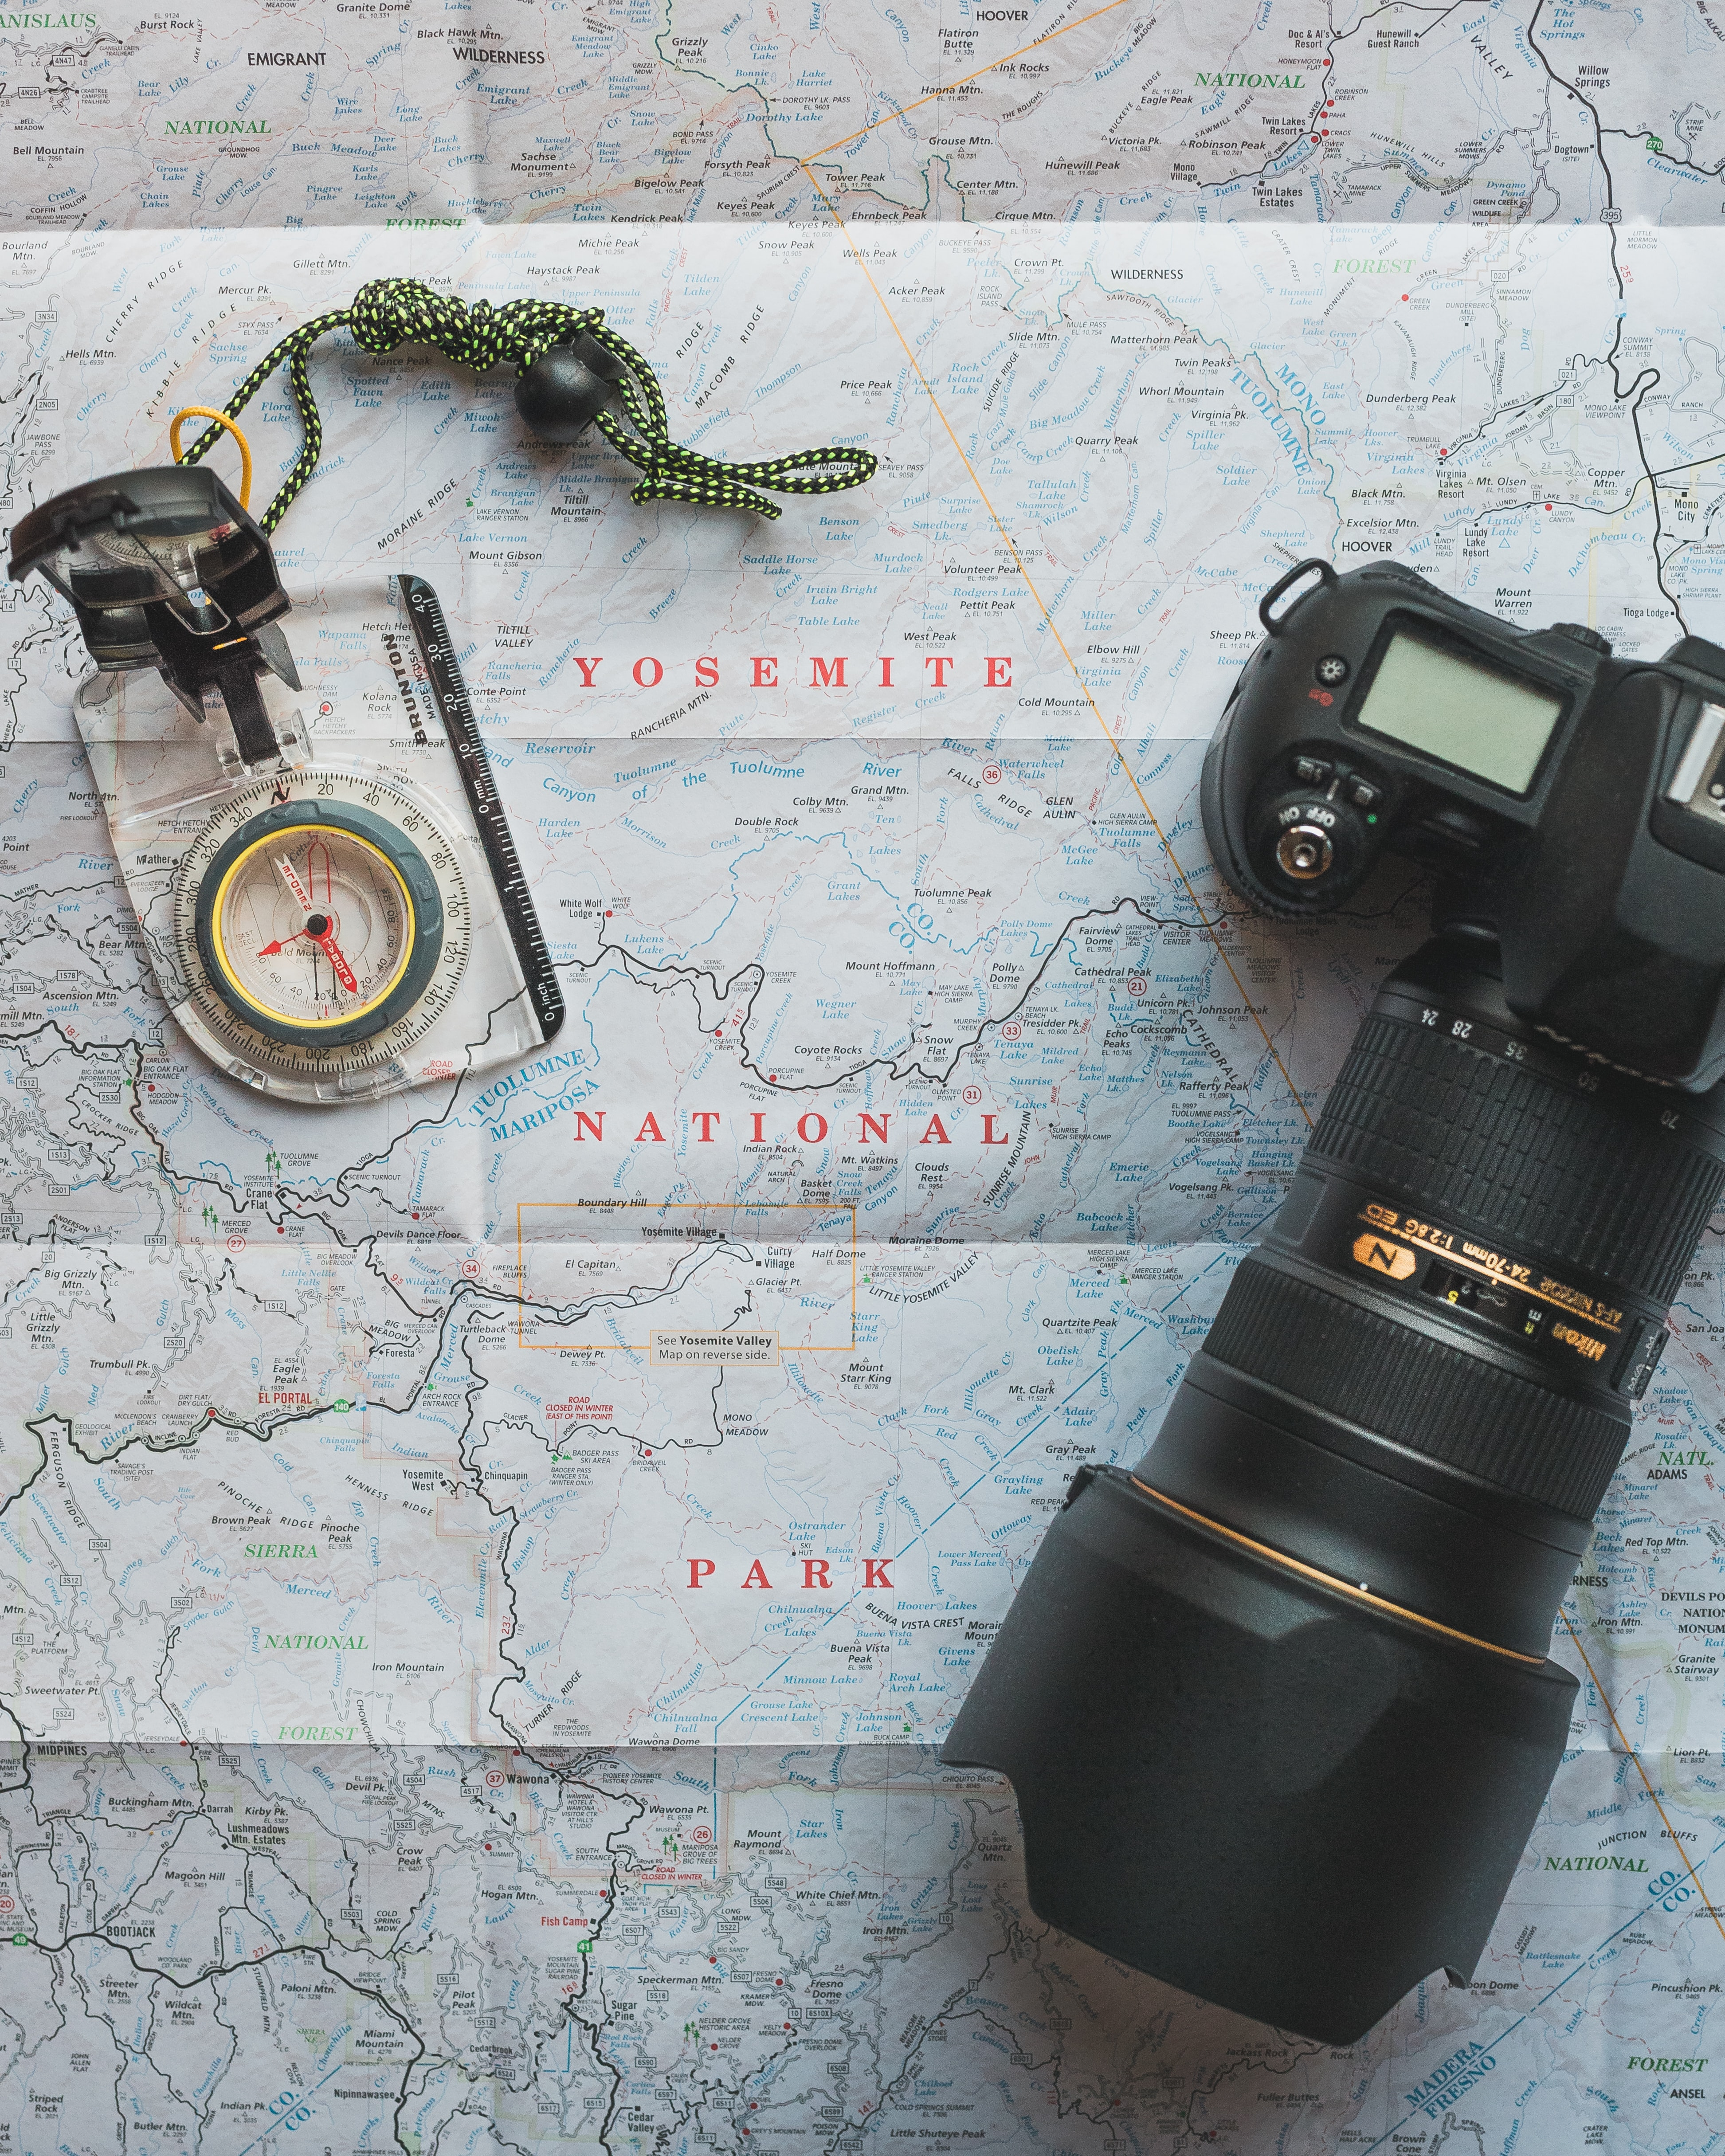 A camera with a telephoto lens and a compass laying on a map of Yosemite Valley